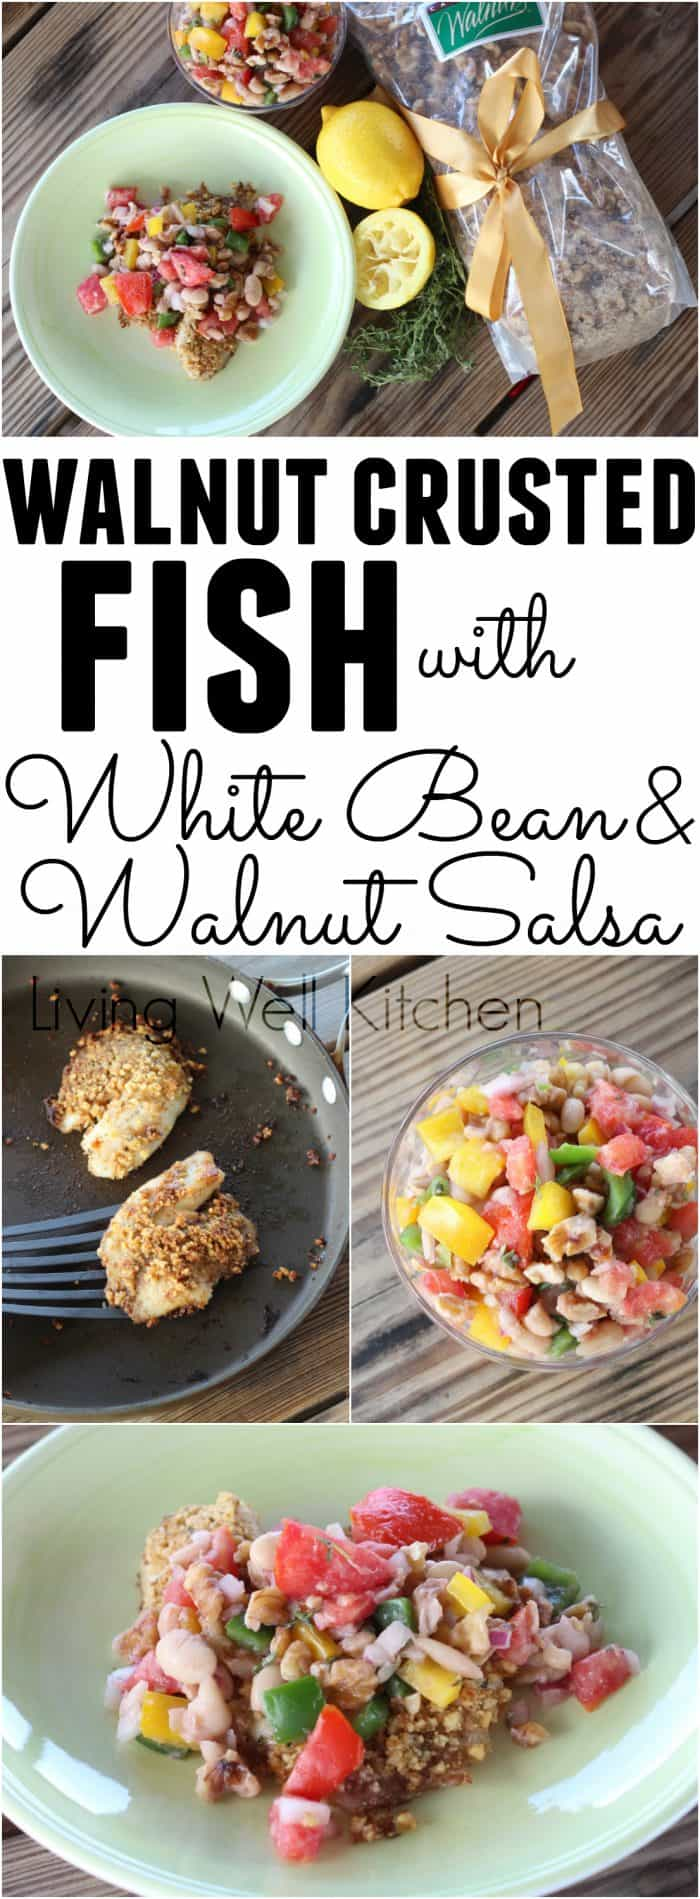 Walnut Crusted Fish with White Bean and Walnut Salsa from @memeinge is a delicious dish full of omega-3 fatty acids, fiber, and tons of tasty summer veggies. This tasty meal is gluten free, egg free, and can be dairy free